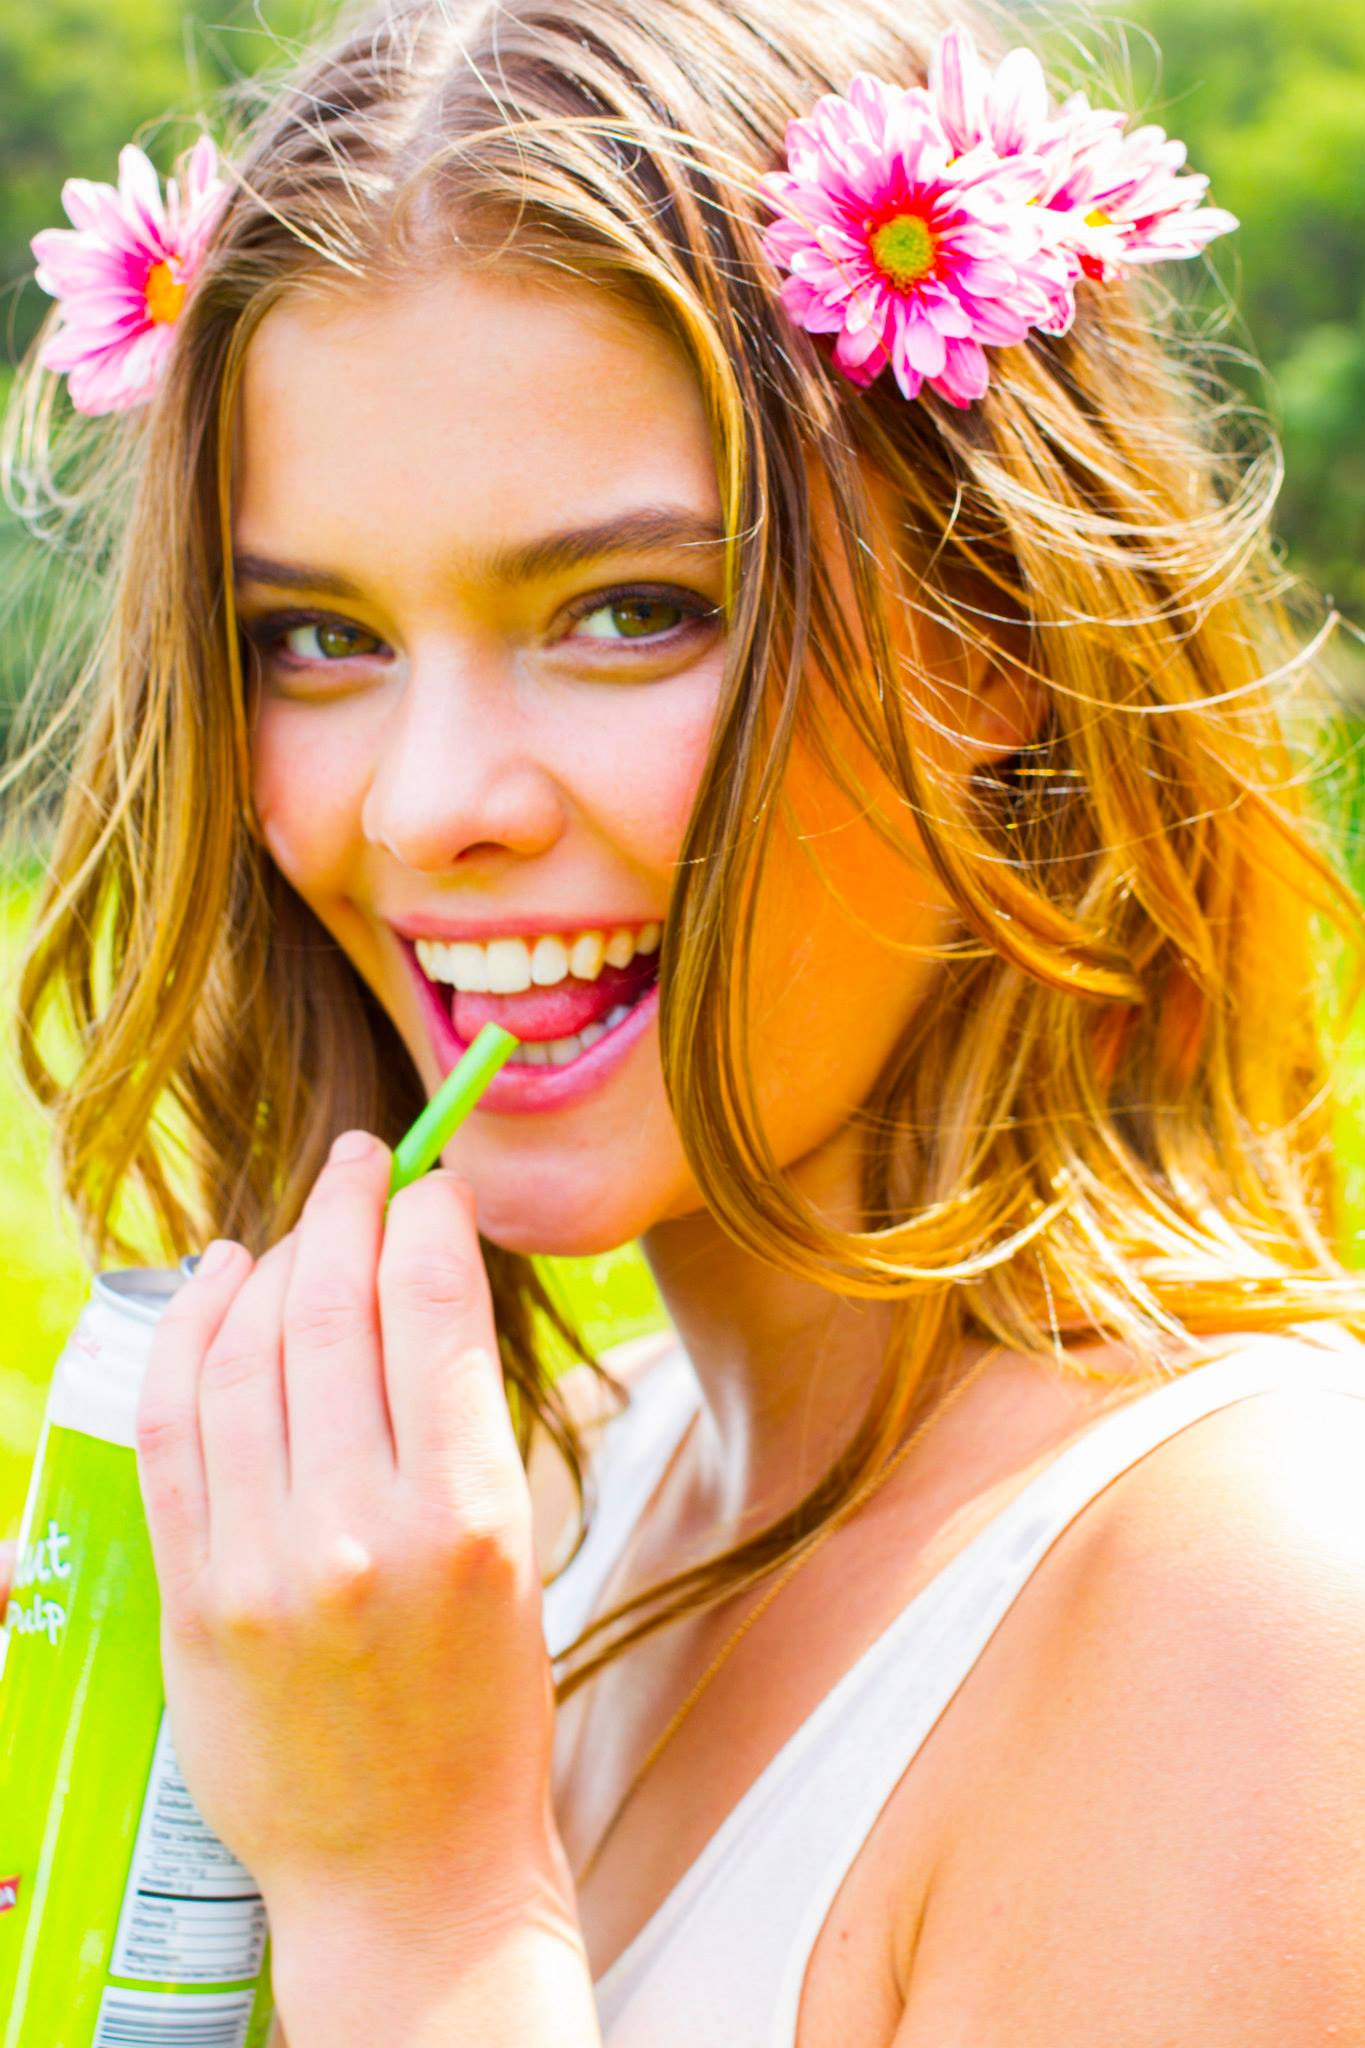 nina-agdal-avon-shoot-behind-the-scenes-milk-studios-la-april-2014-set-2-01